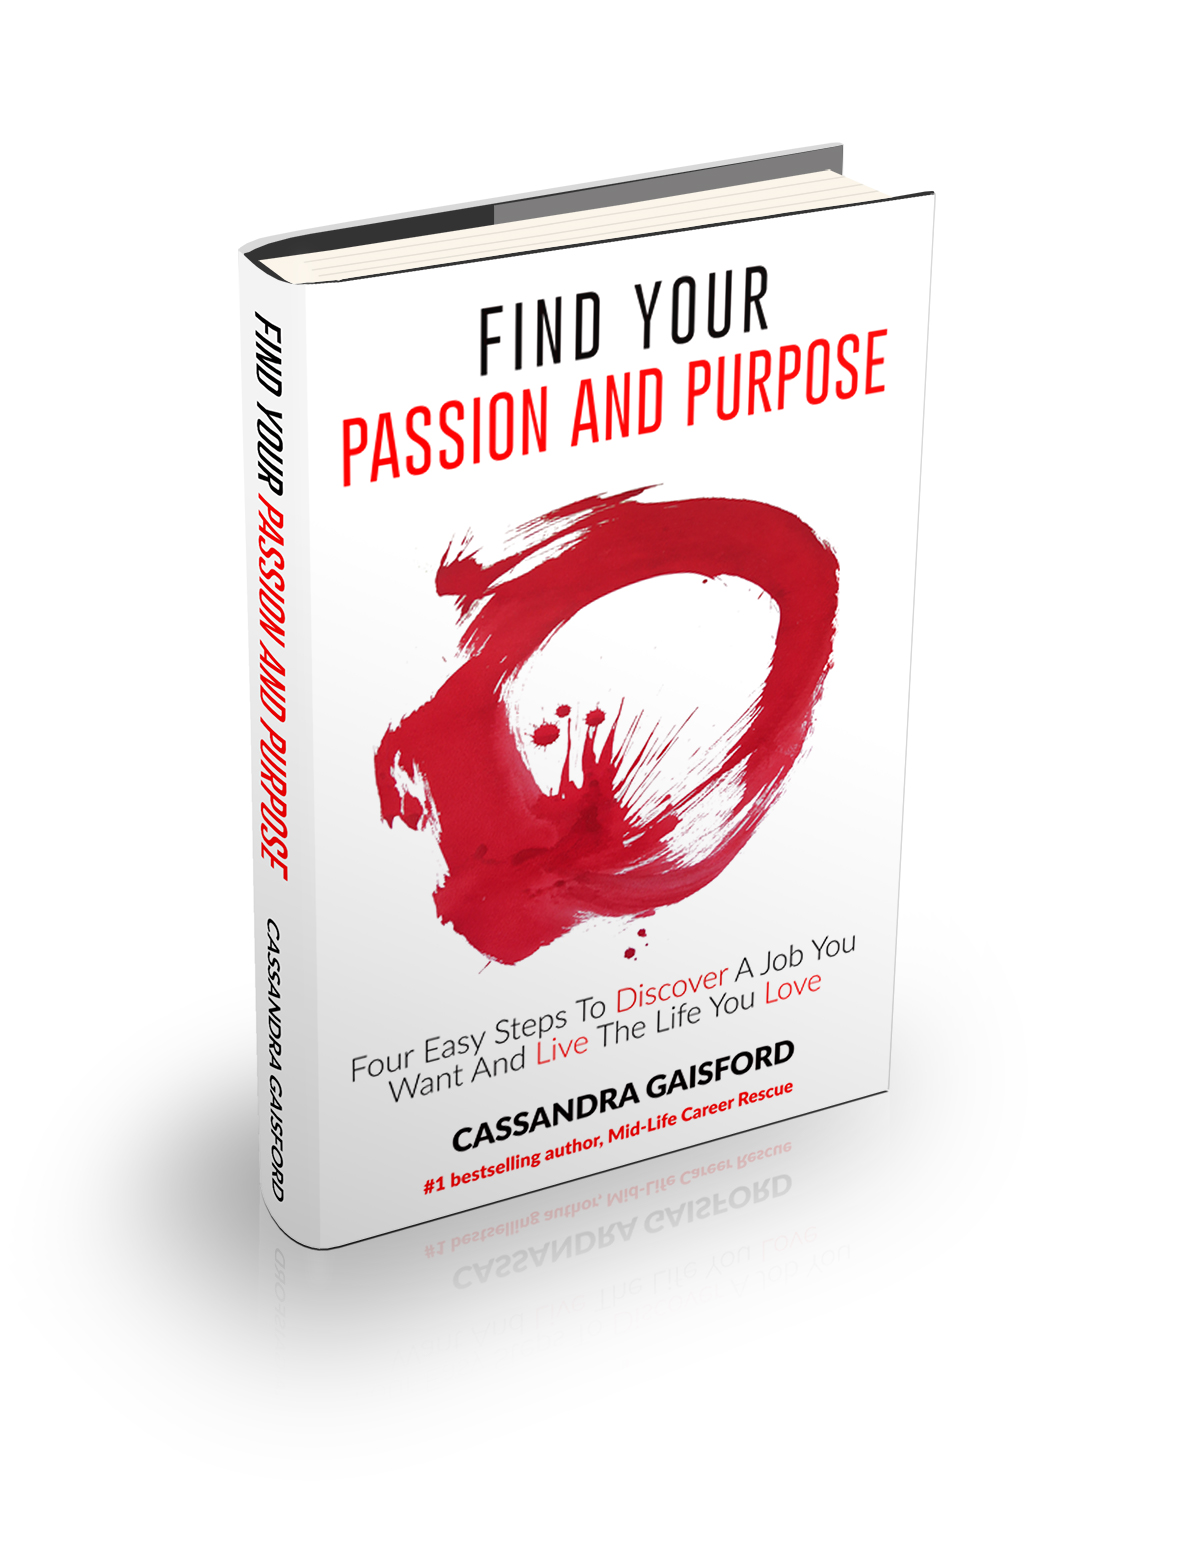 Find Your Passion And Purpose Four Easy Steps To Discover